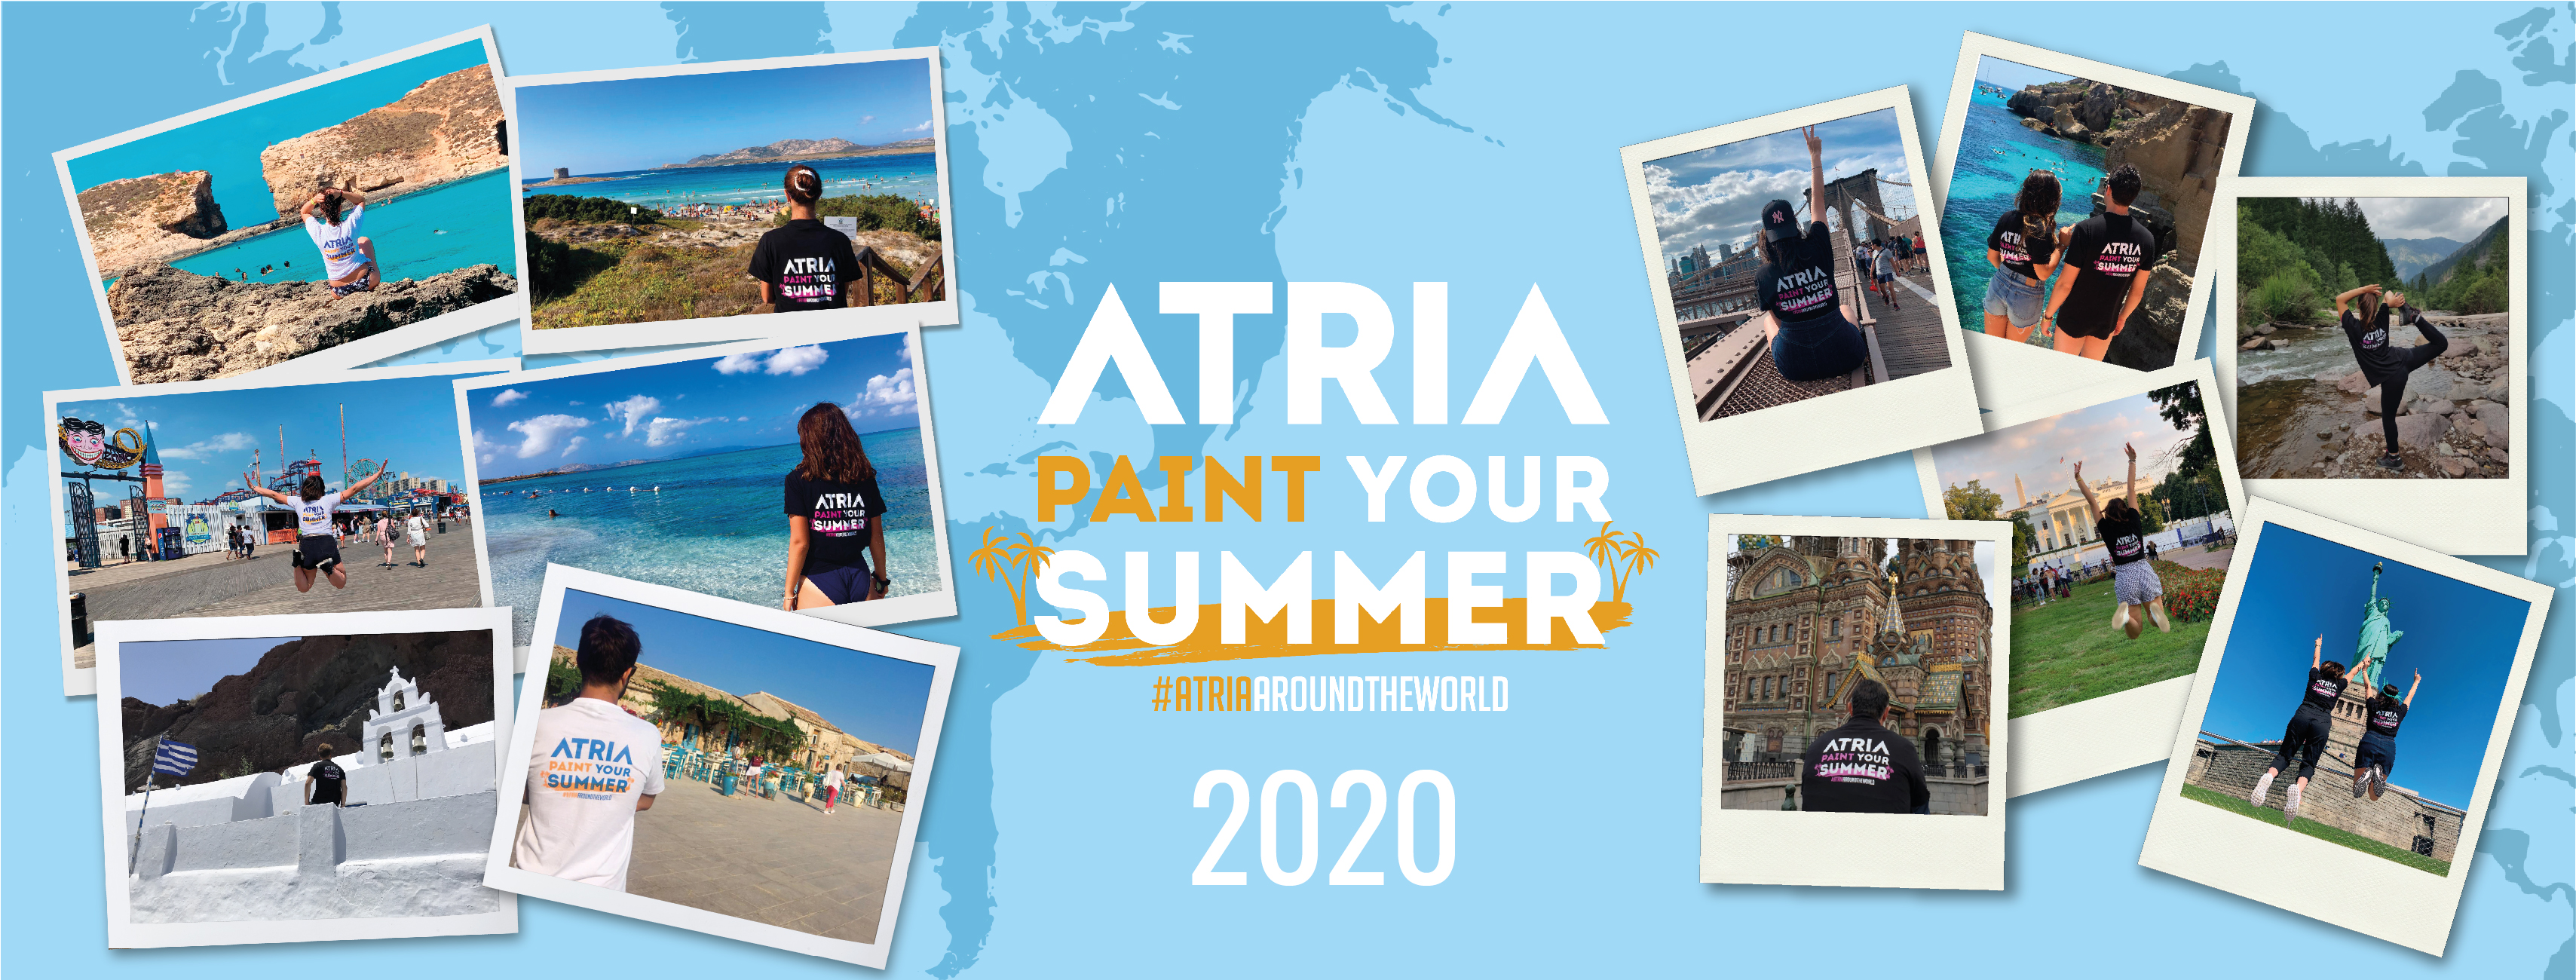 ATRIA - PAINT YOUR SUMMER 2020